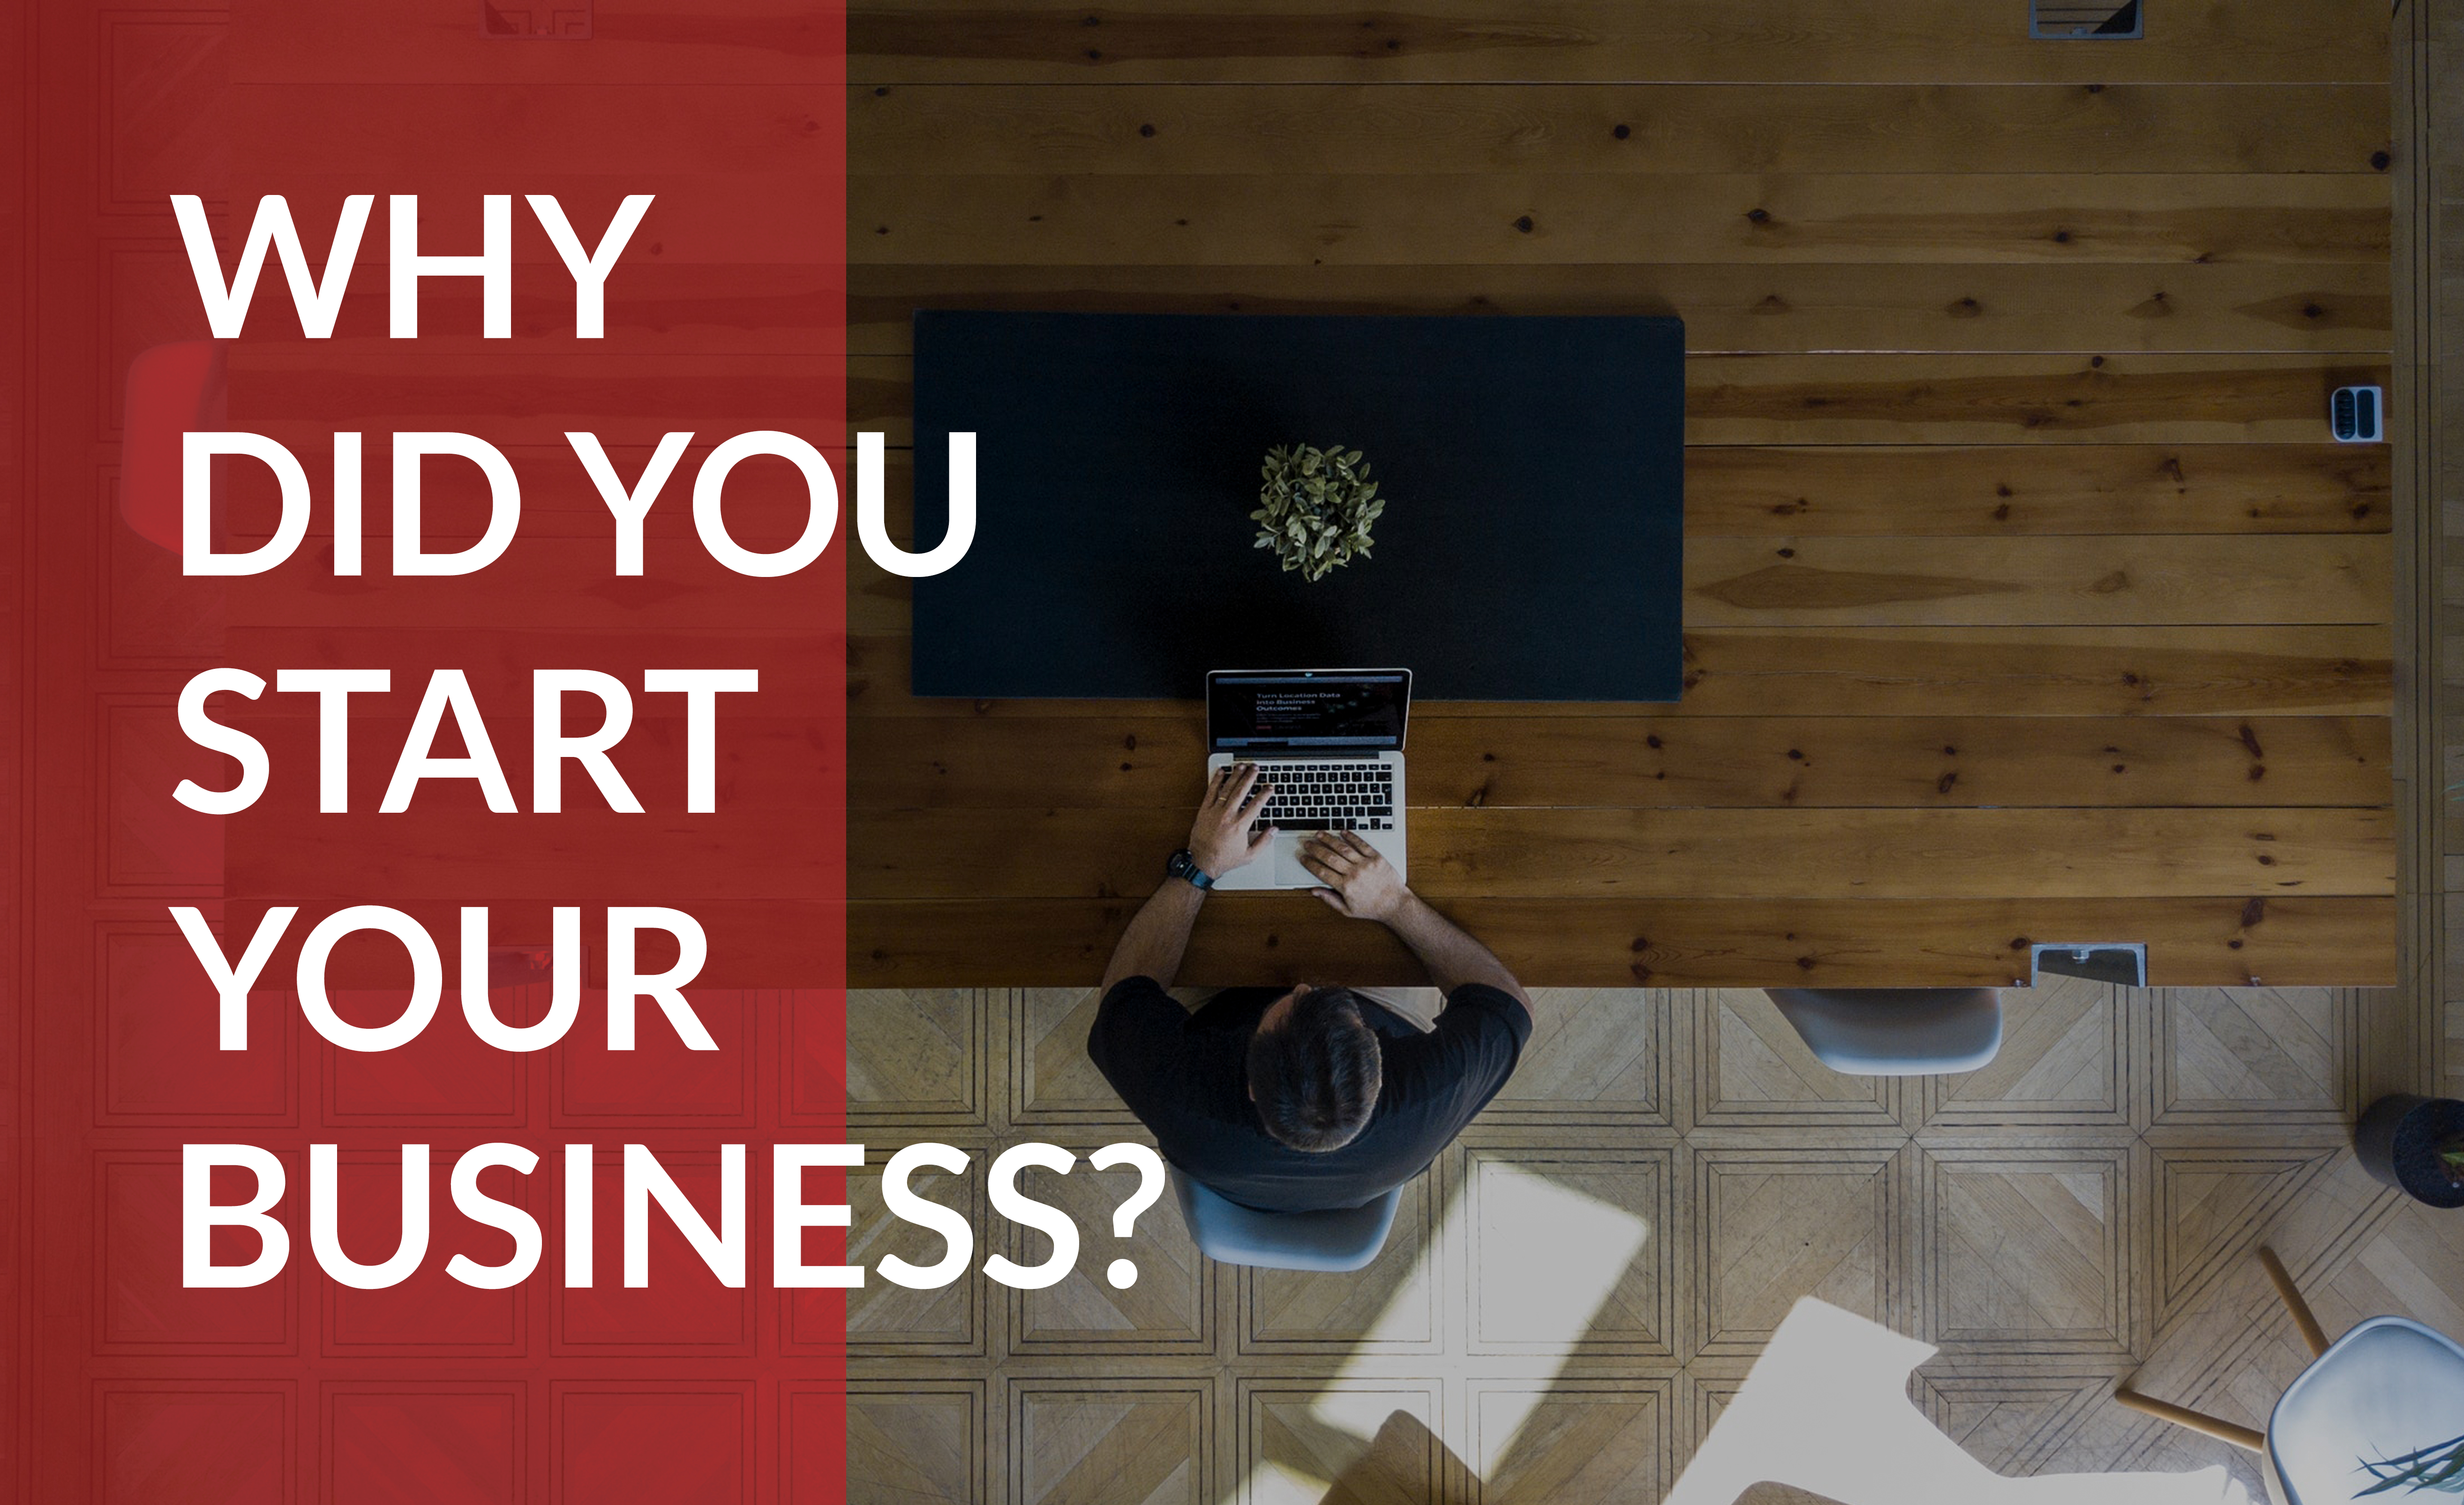 Power all of your marketing with the story of starting your business.